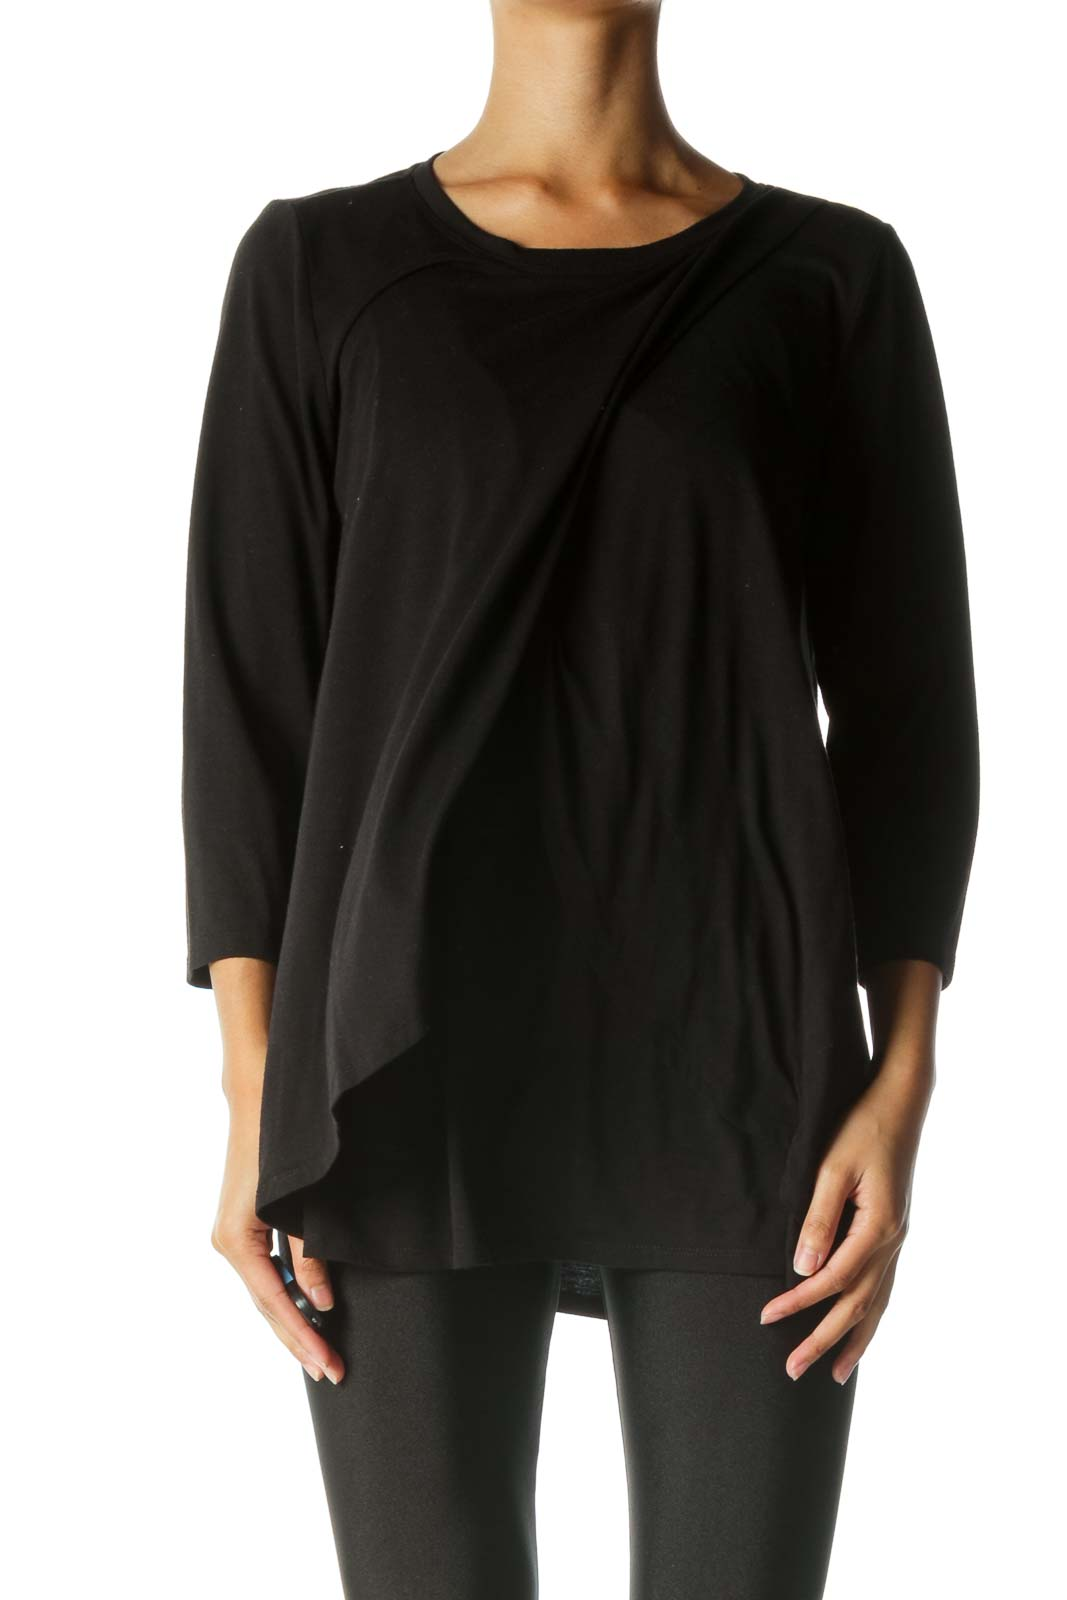 Black Nursing Long Sleeve Shirt